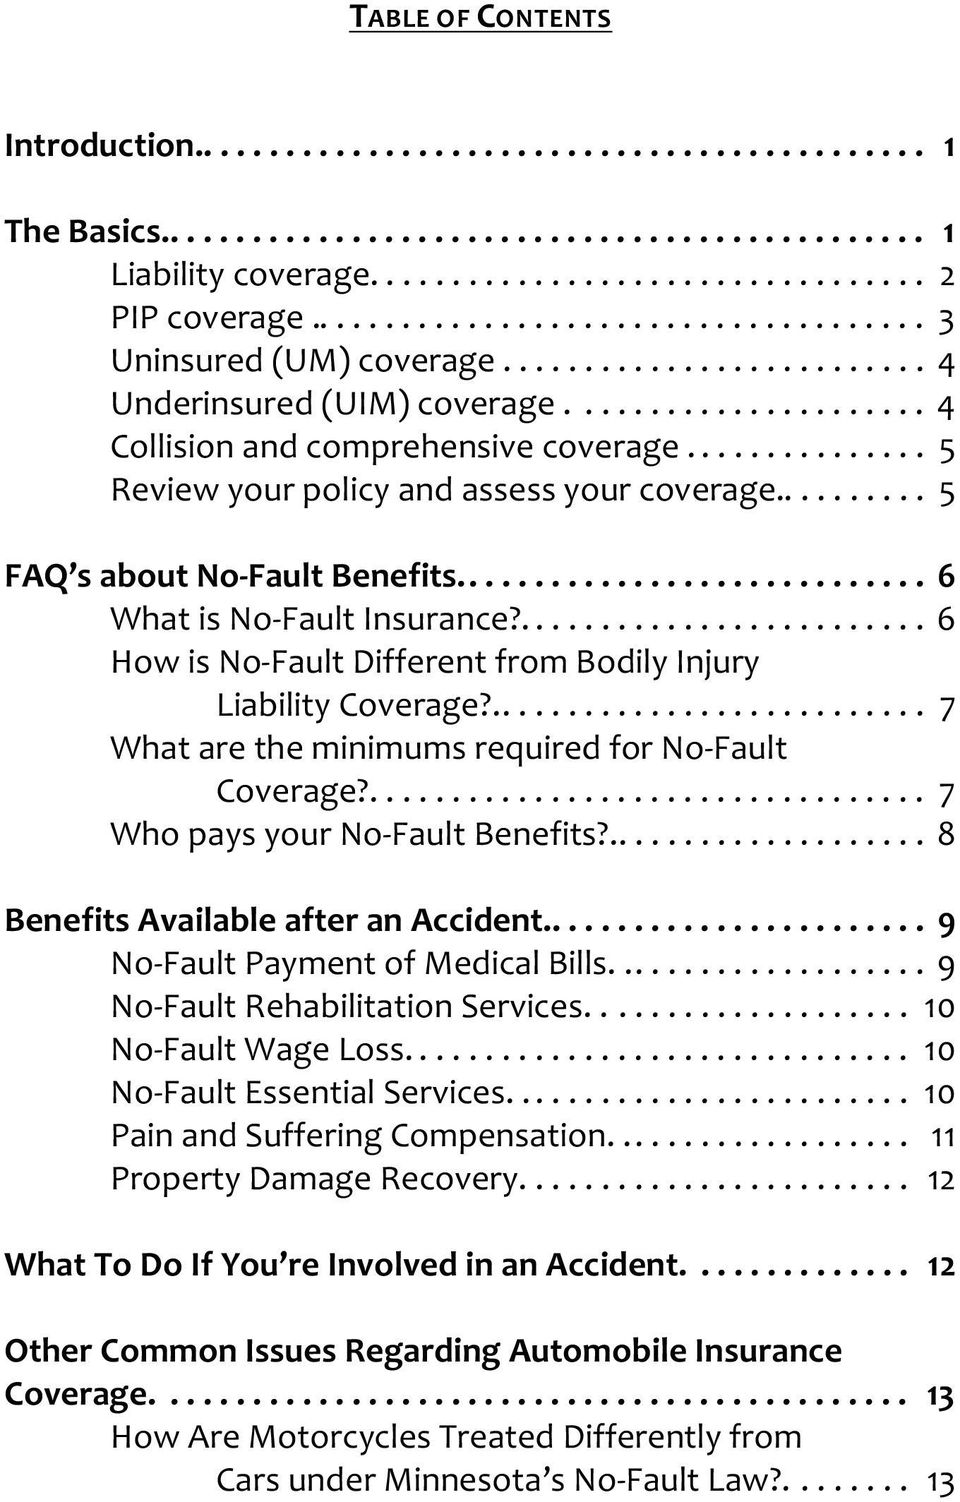 .... 6 How is No-Fault Different from Bodily Injury Liability Coverage?... 7 What are the minimums required for No-Fault Coverage?......... 7 Who pays your No-Fault Benefits?